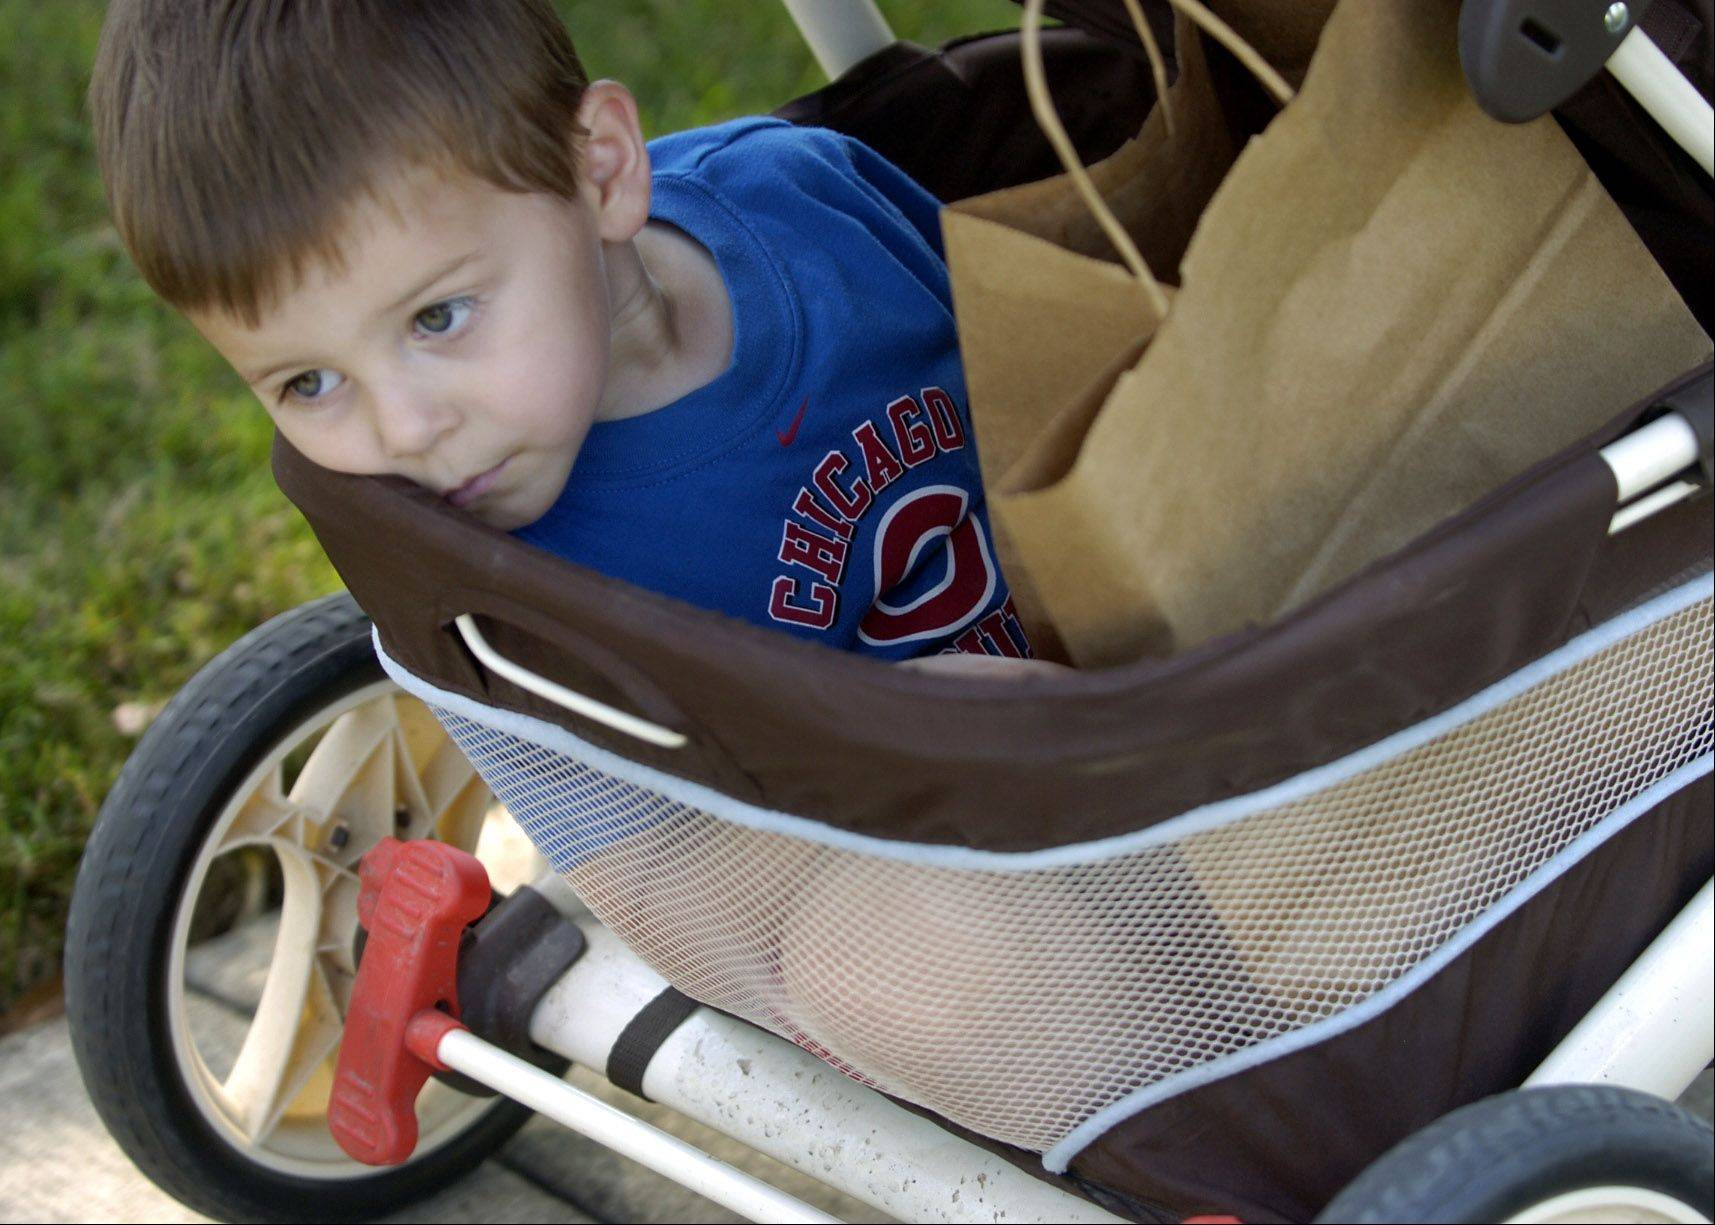 3-year-old Justin Anderson hitches a ride on the back of baby Ben's stroller, on the way back from their nature hike.